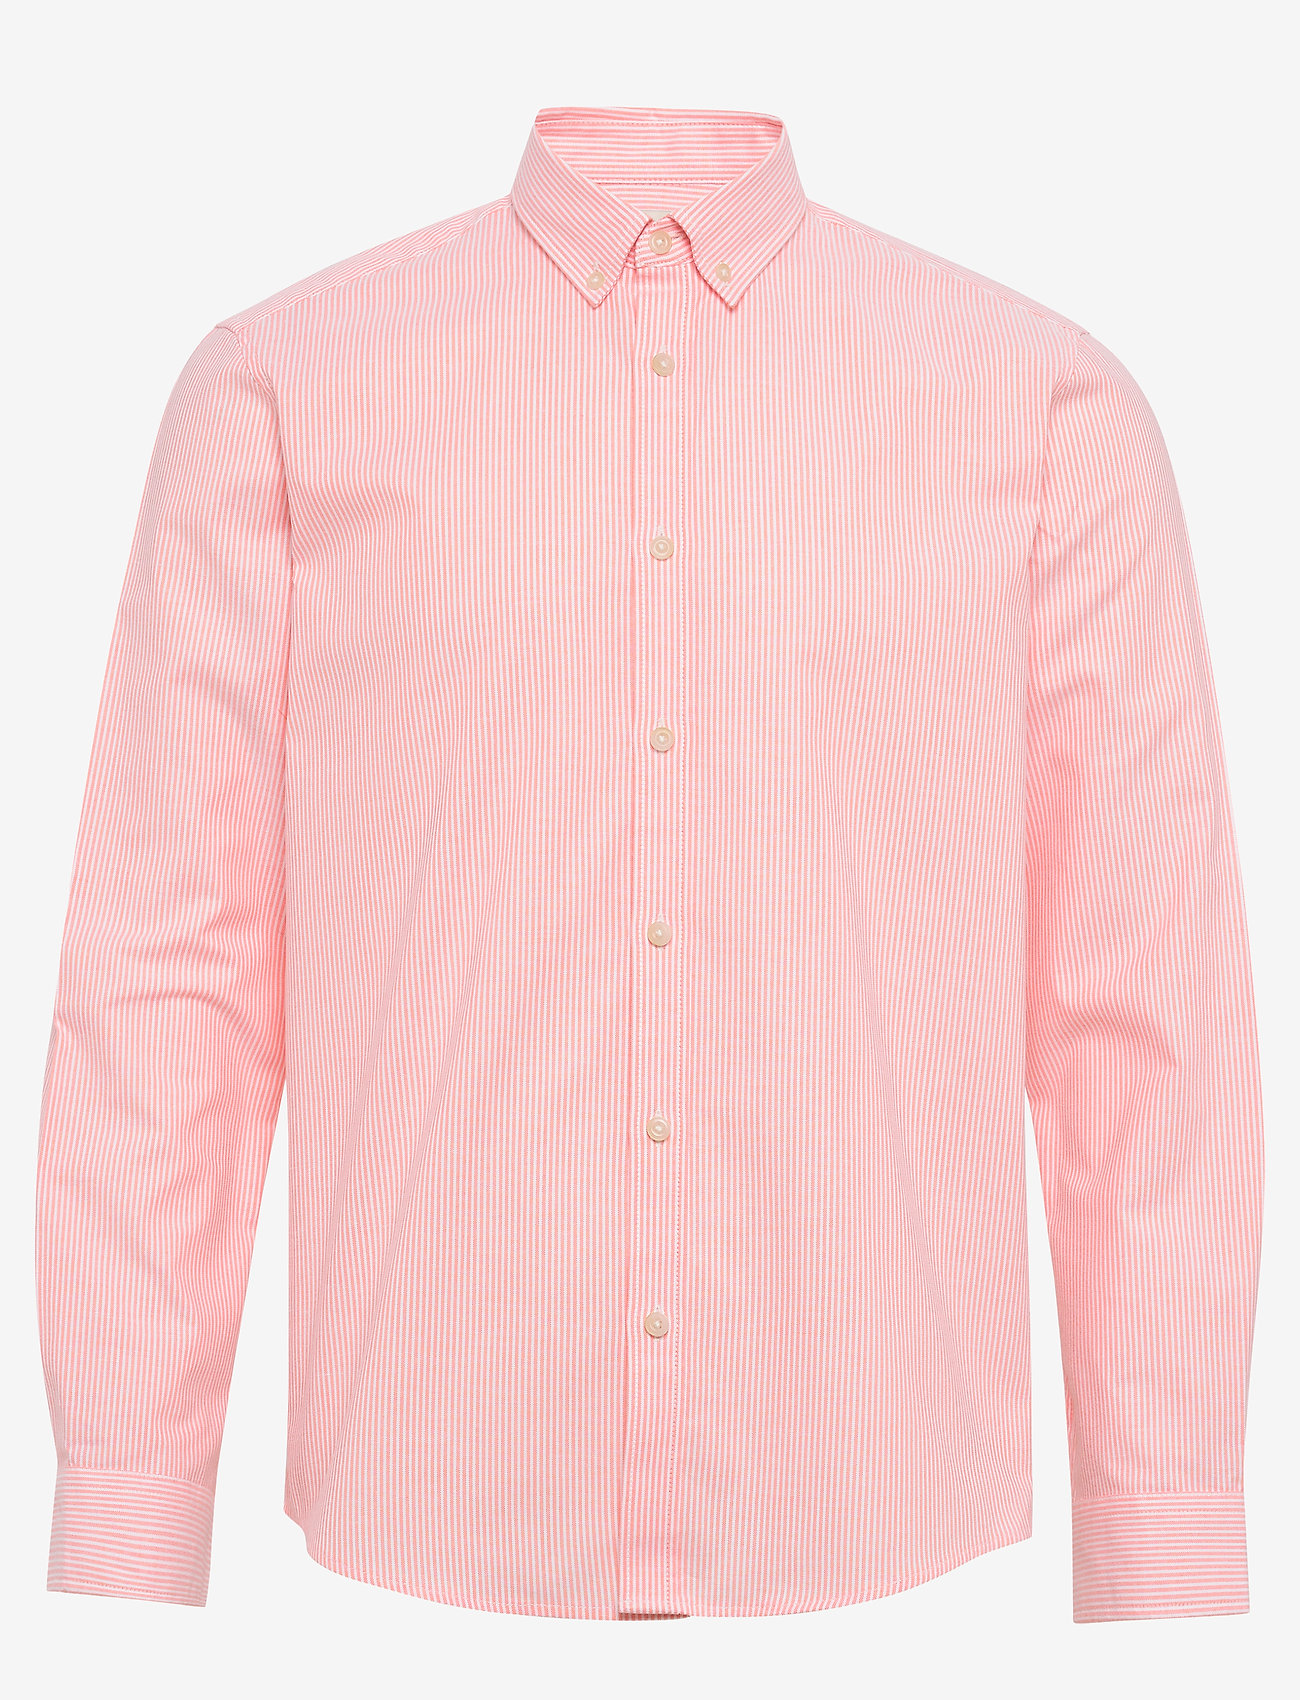 Esprit Casual - Shirts woven - oxford shirts - coral 3 - 0